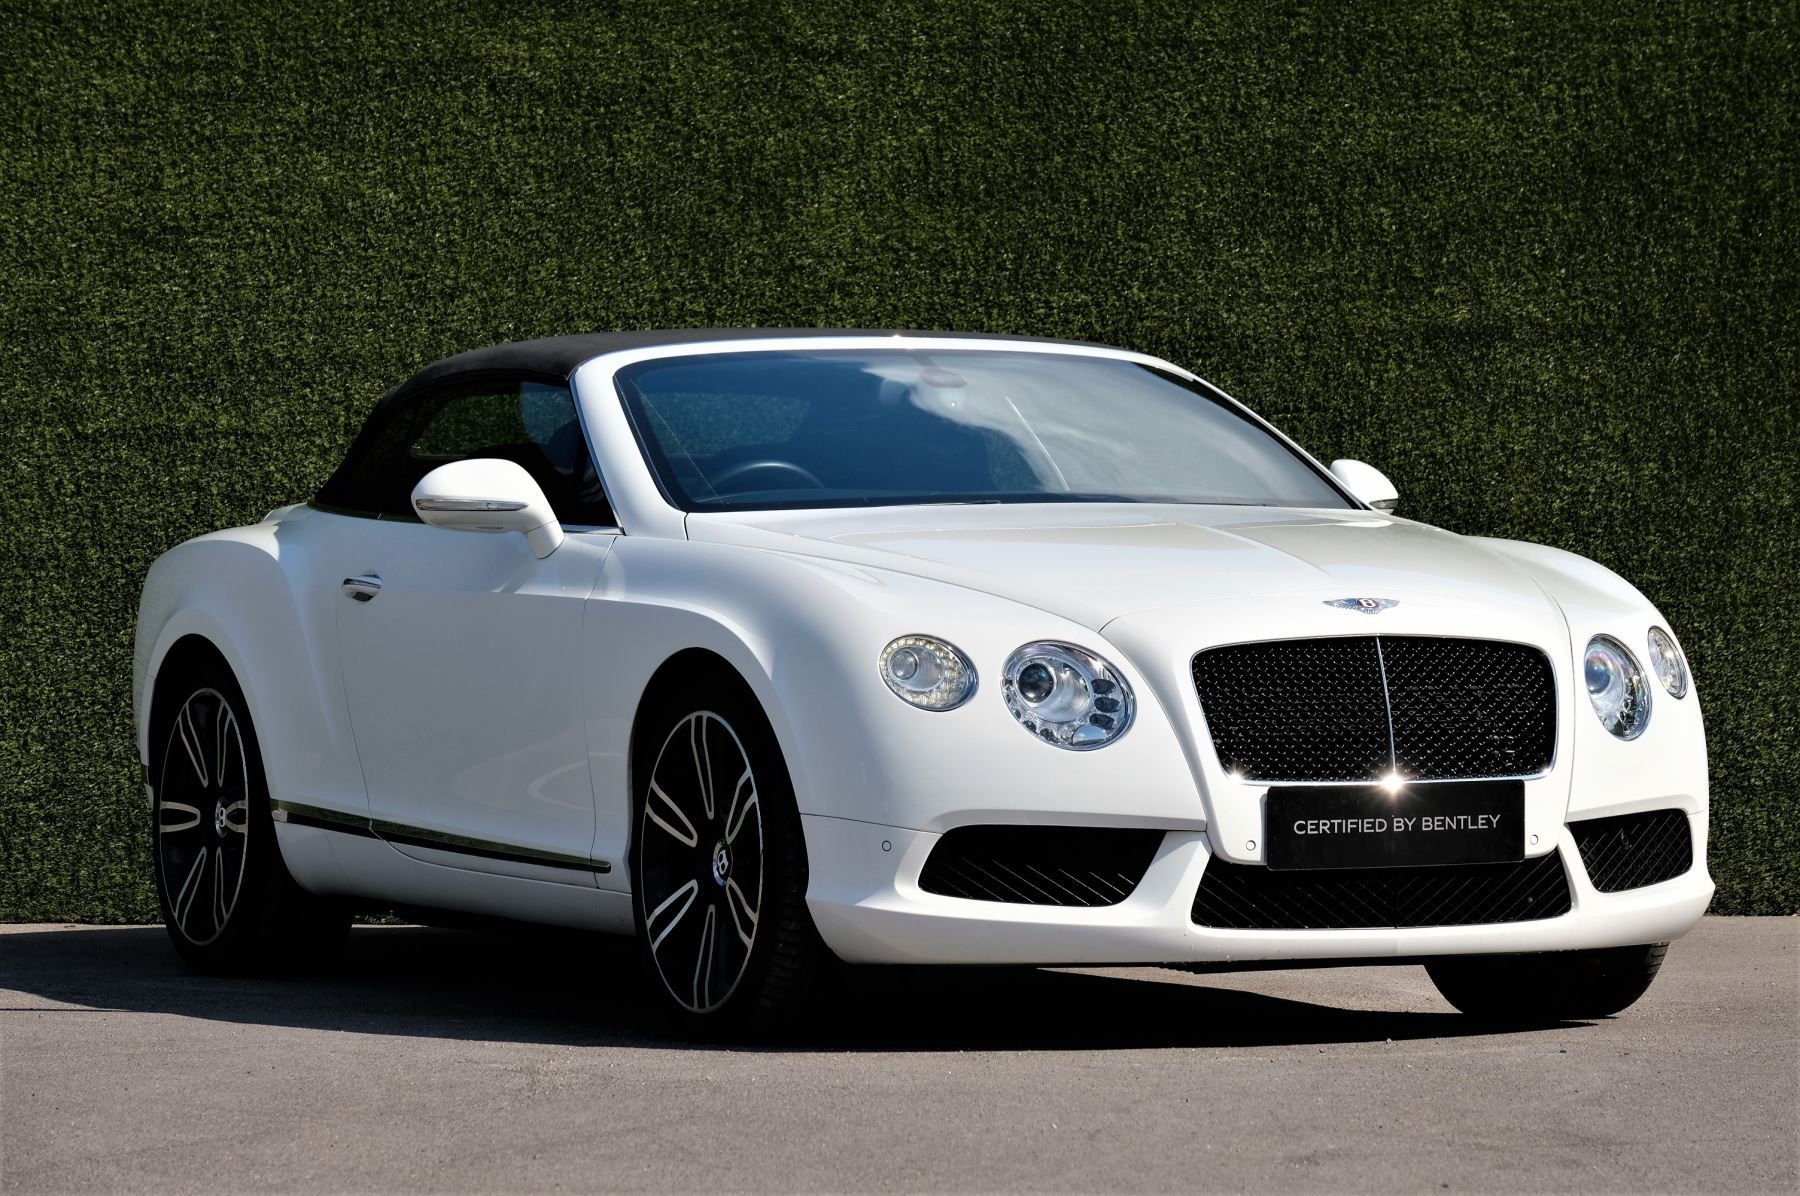 Bentley Continental GTC 4.0 V8 - Sports and Colour Specification image 1